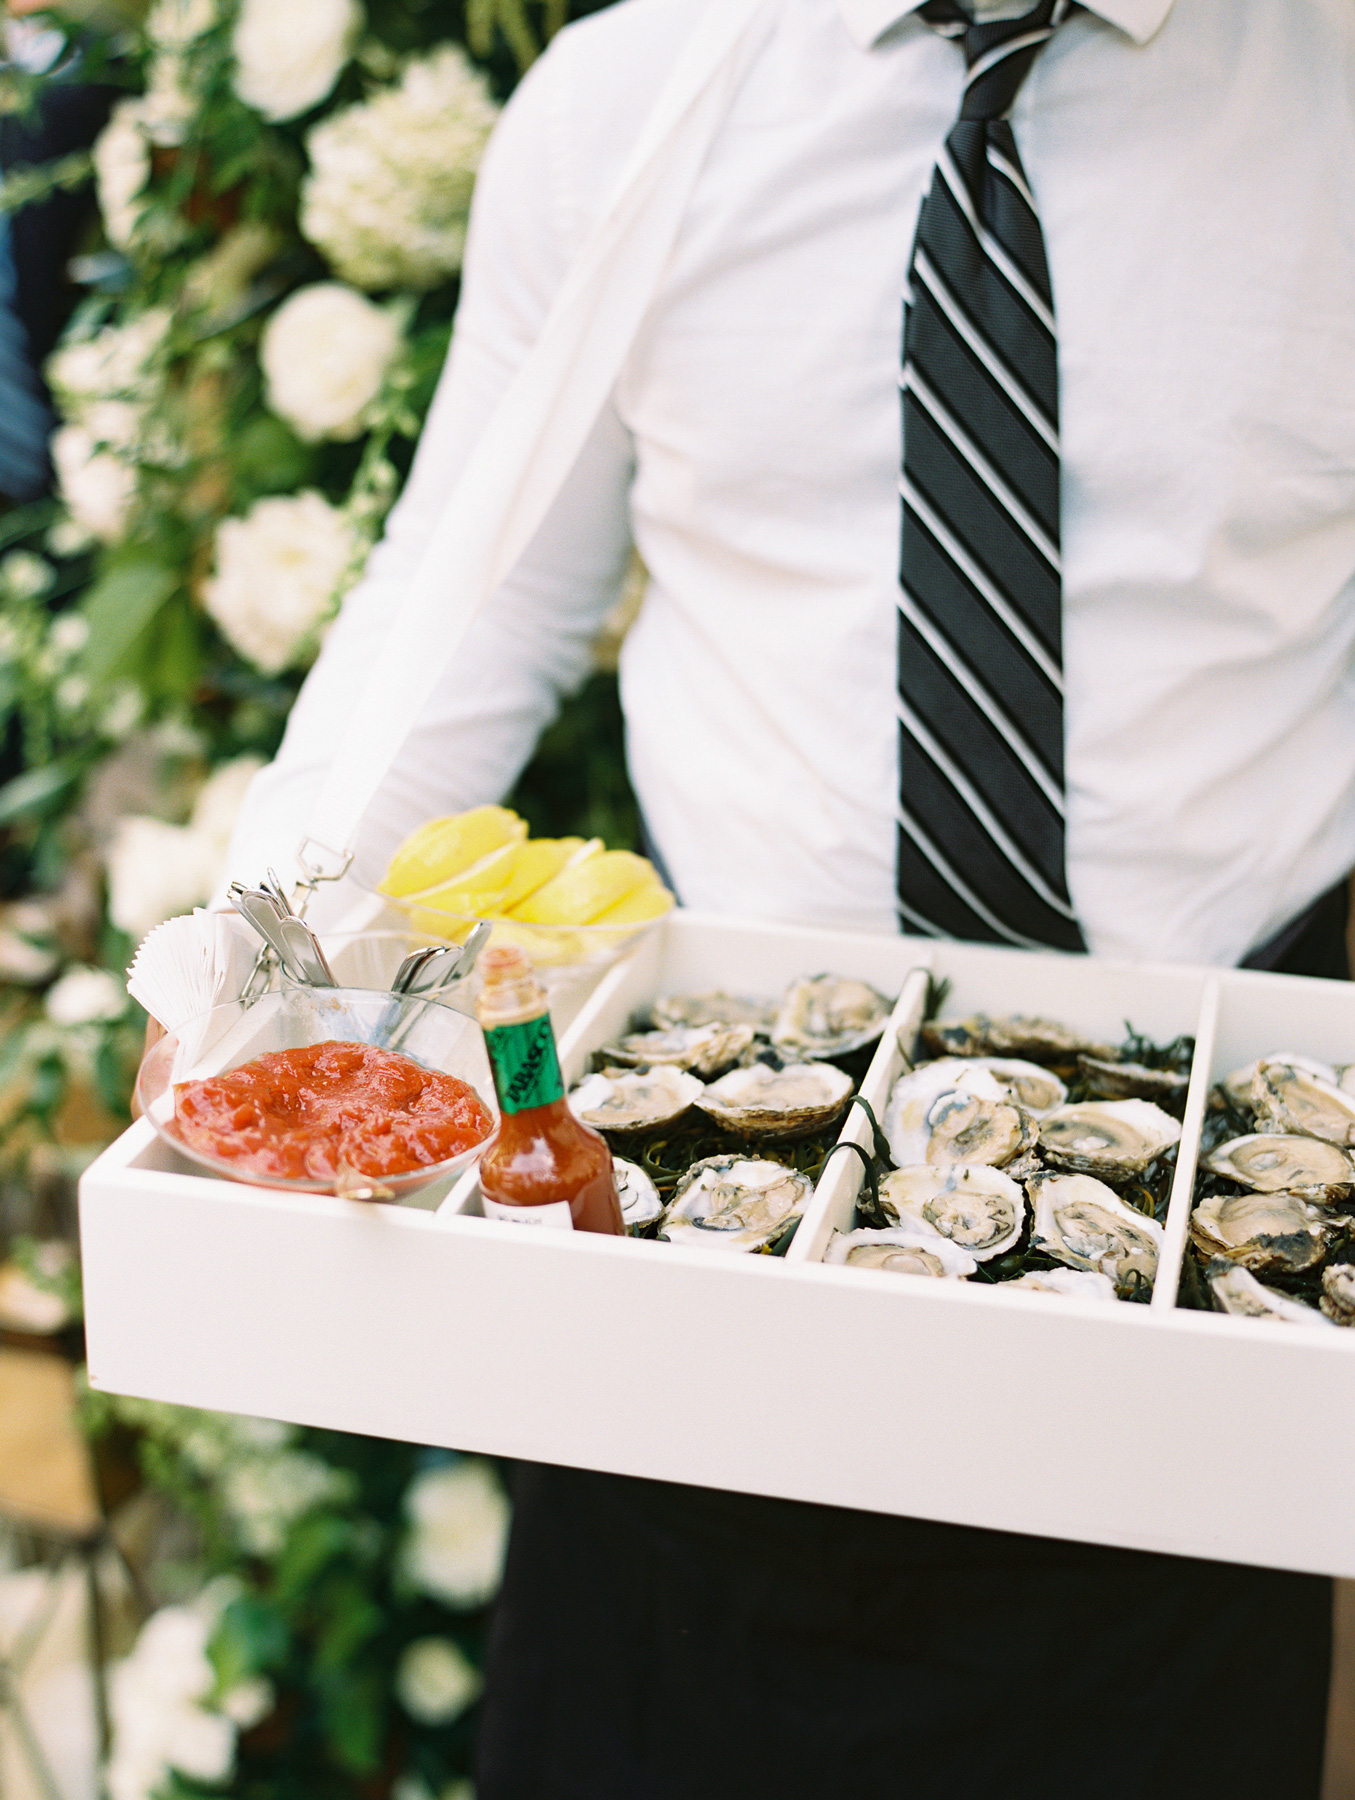 close-up of oysters and sauce in serving box